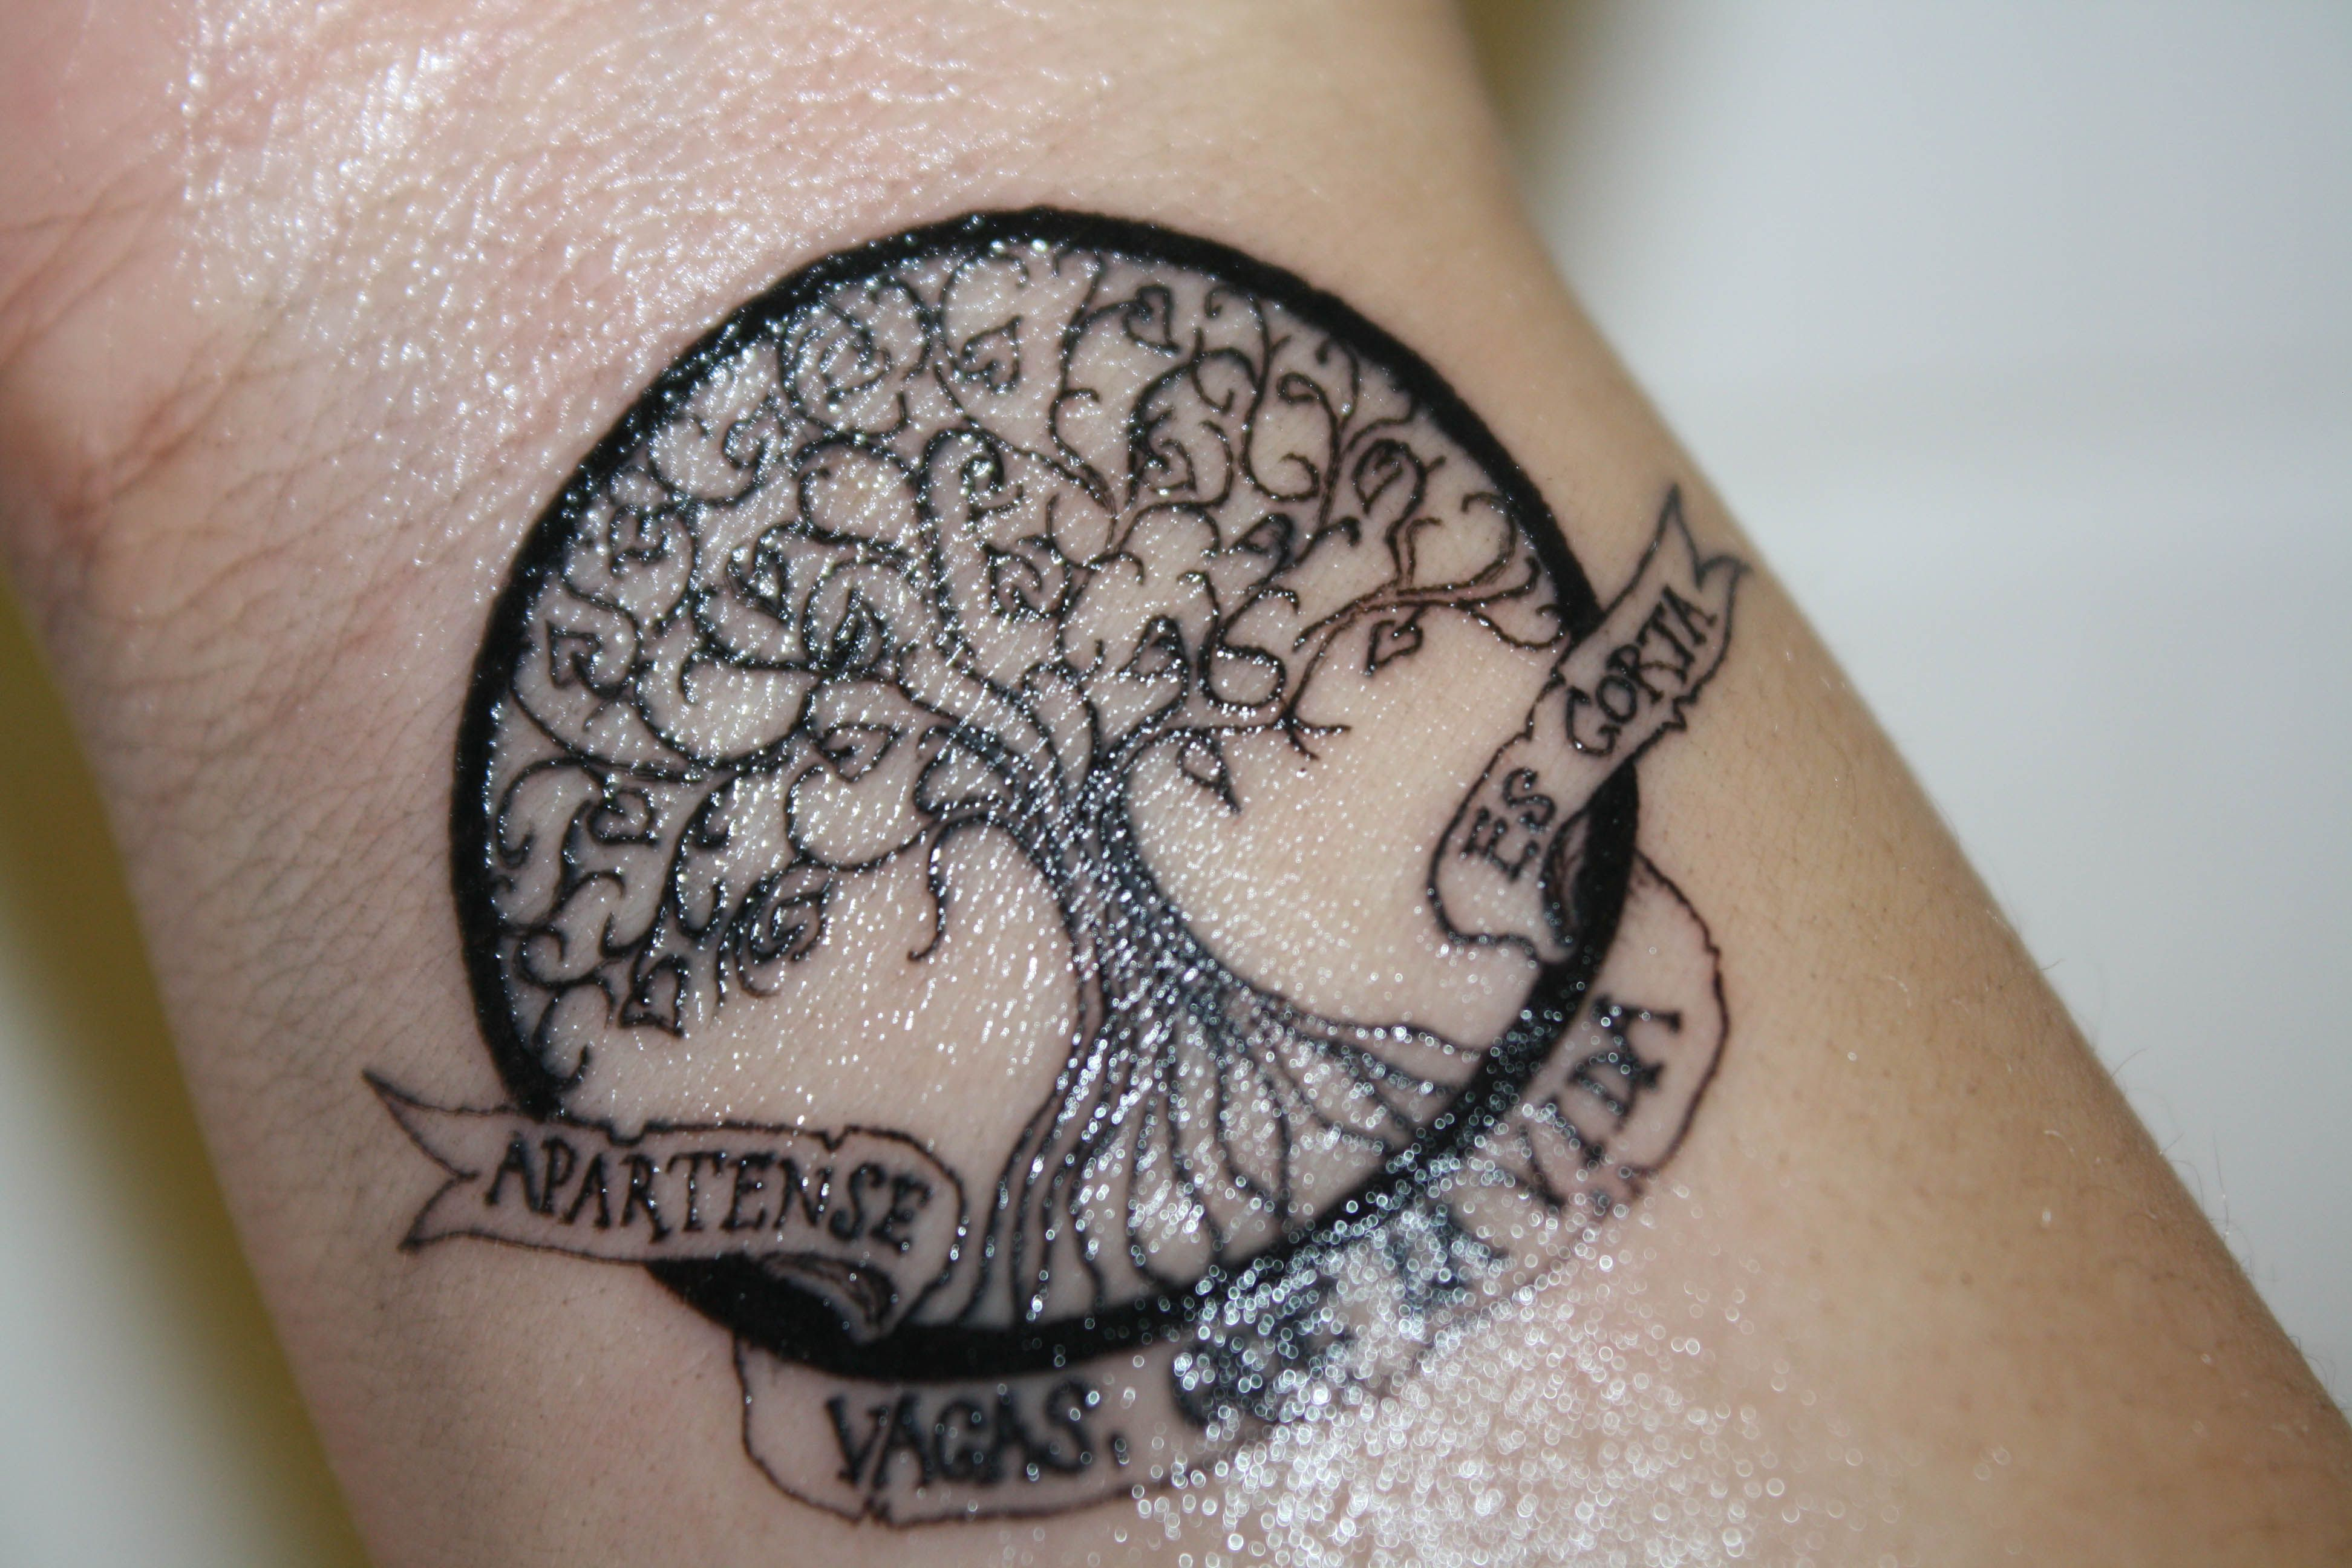 "Tatuaje en mi muñeca inspirado en el libre Cien años de soledad de Gabriel García Marquez (uno de mis libros favoritos). El árbol de la vida y la frase ""Apártense vacas que la vida es corta"". A hundred years of solitude wrist tattoo. A tree with the quote ""Cease, Cows 